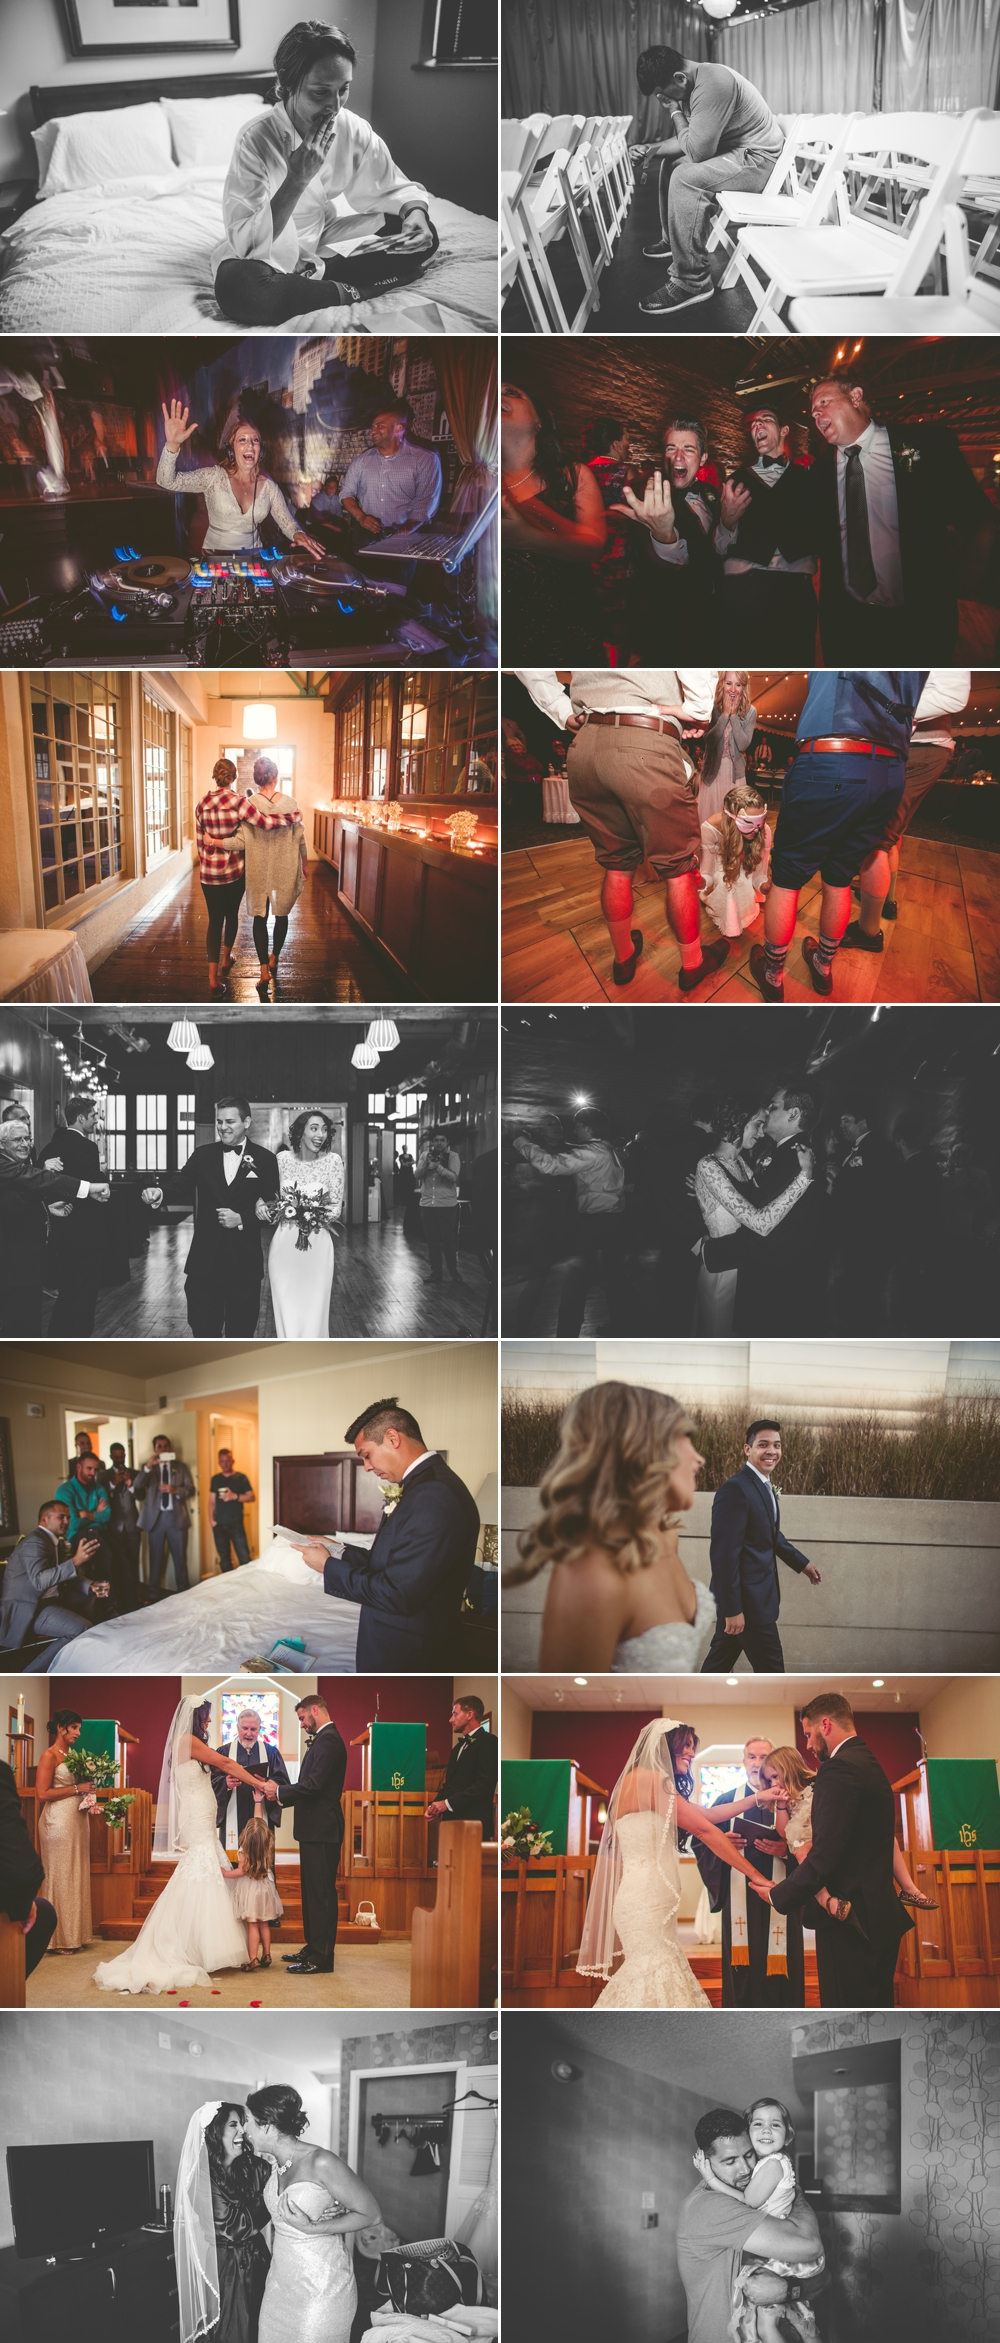 jason_domingues_photography_best_kansas_city_photography_kc_wedding_weddings0004.jpg